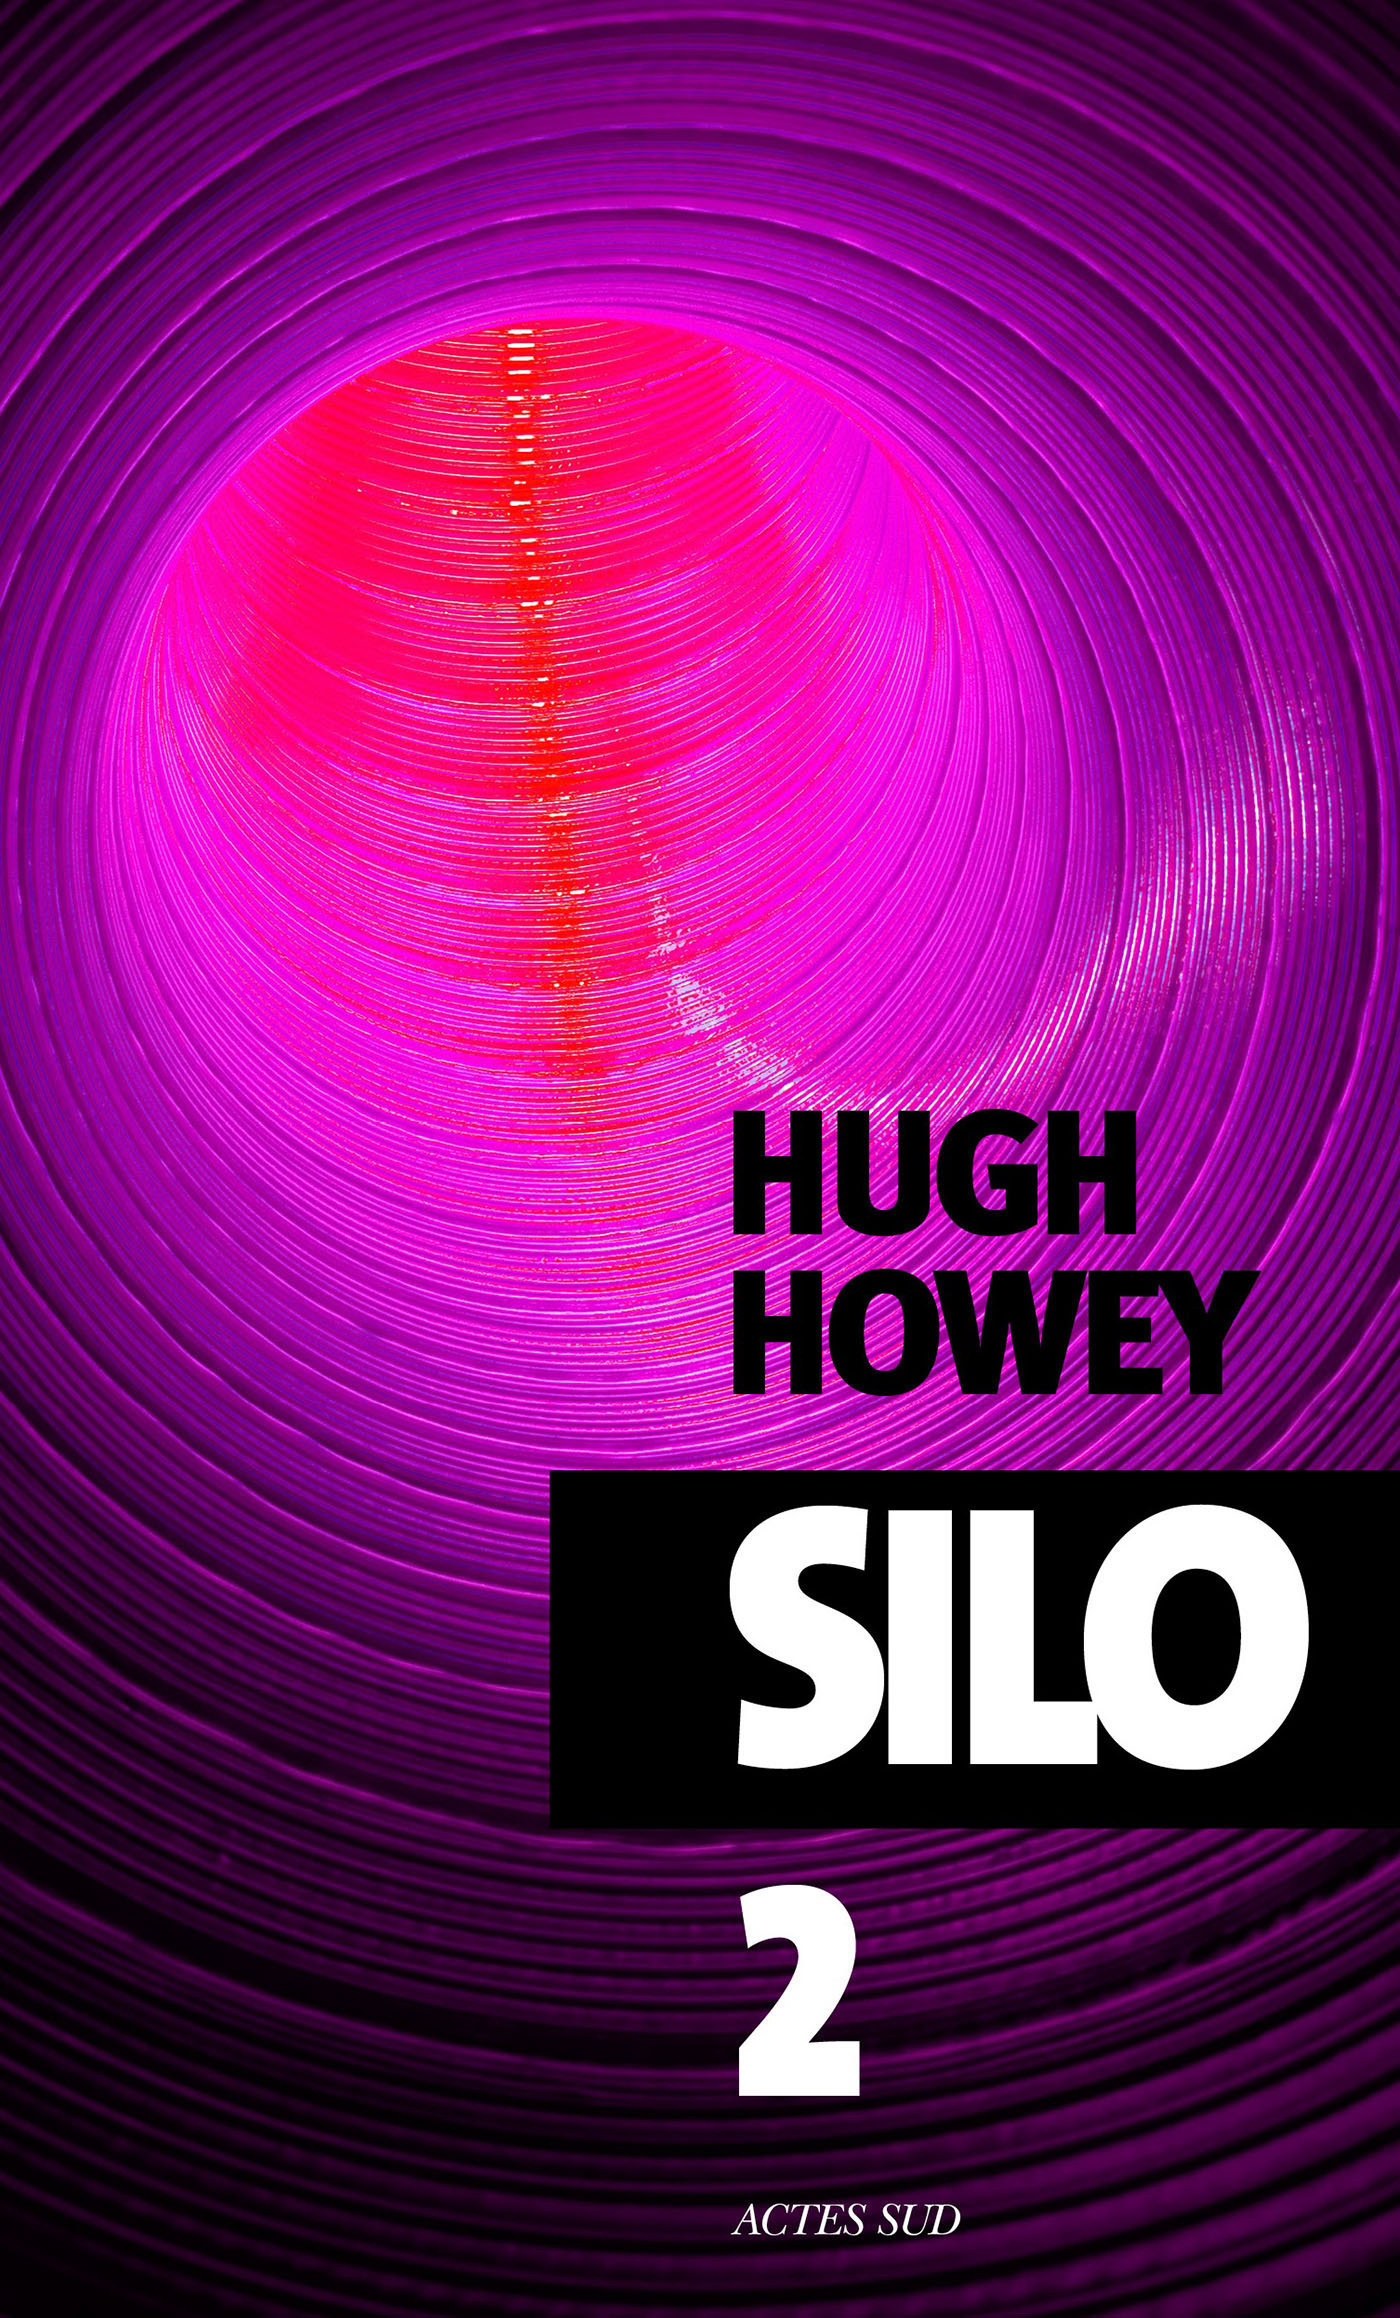 Silo - épisode 2 - Hugh Howey